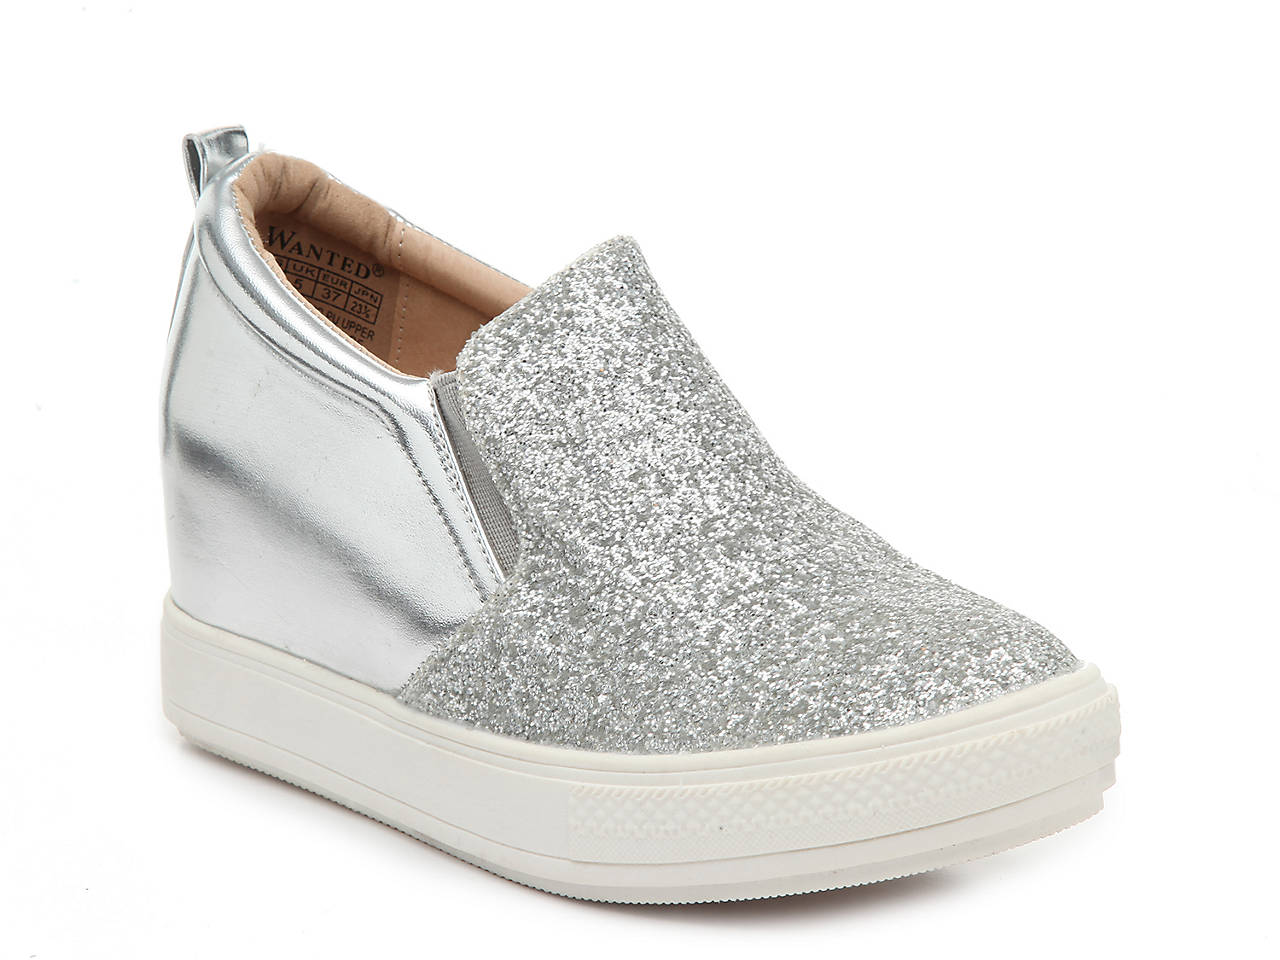 e4118b9066d0 Wanted Luminous Wedge Slip-On Sneaker Women s Shoes